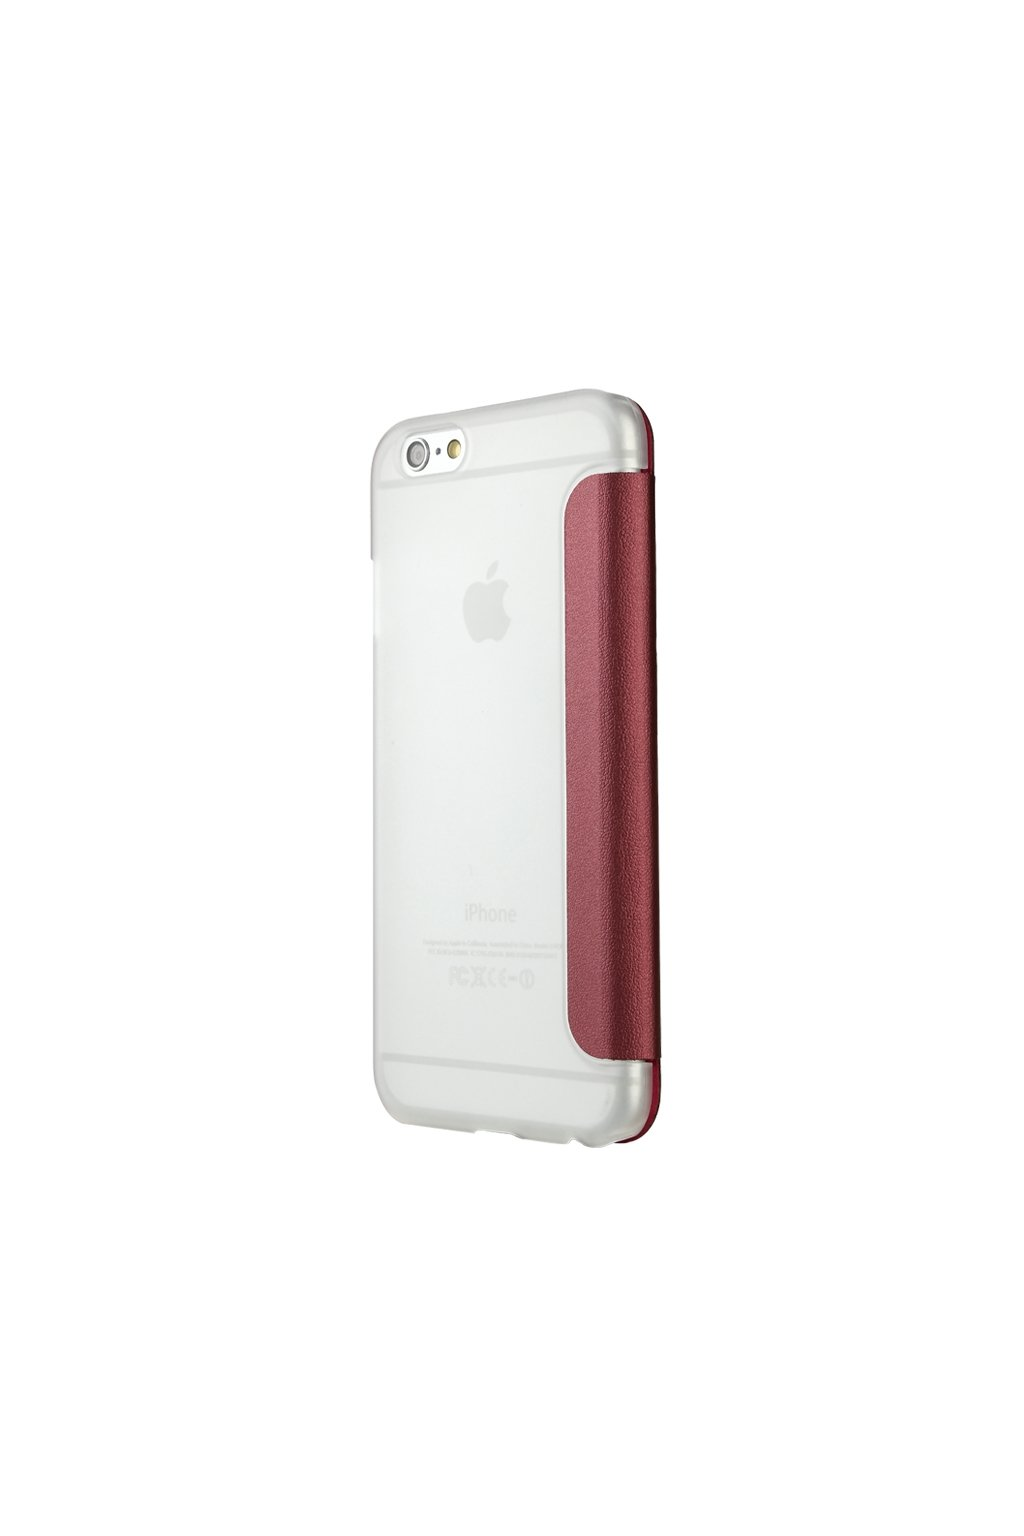 Apple iPhone 6/6S pouzdro Baseus Caller ID flip, red/červená